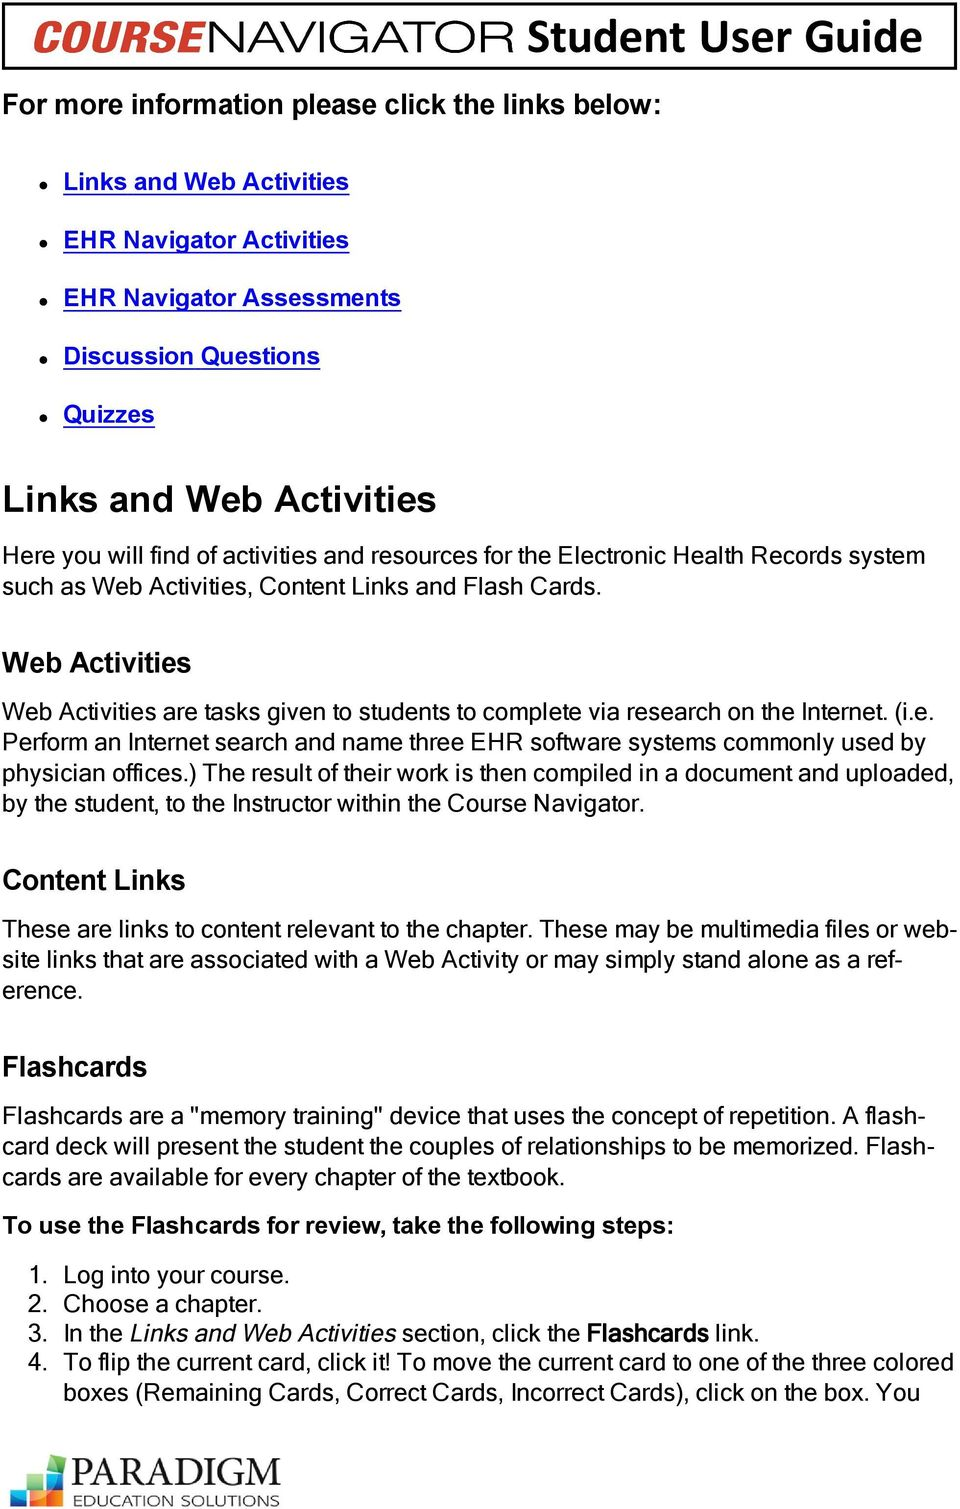 Web Activities Web Activities are tasks given to students to complete via research on the Internet. (i.e. Perform an Internet search and name three EHR software systems commonly used by physician offices.